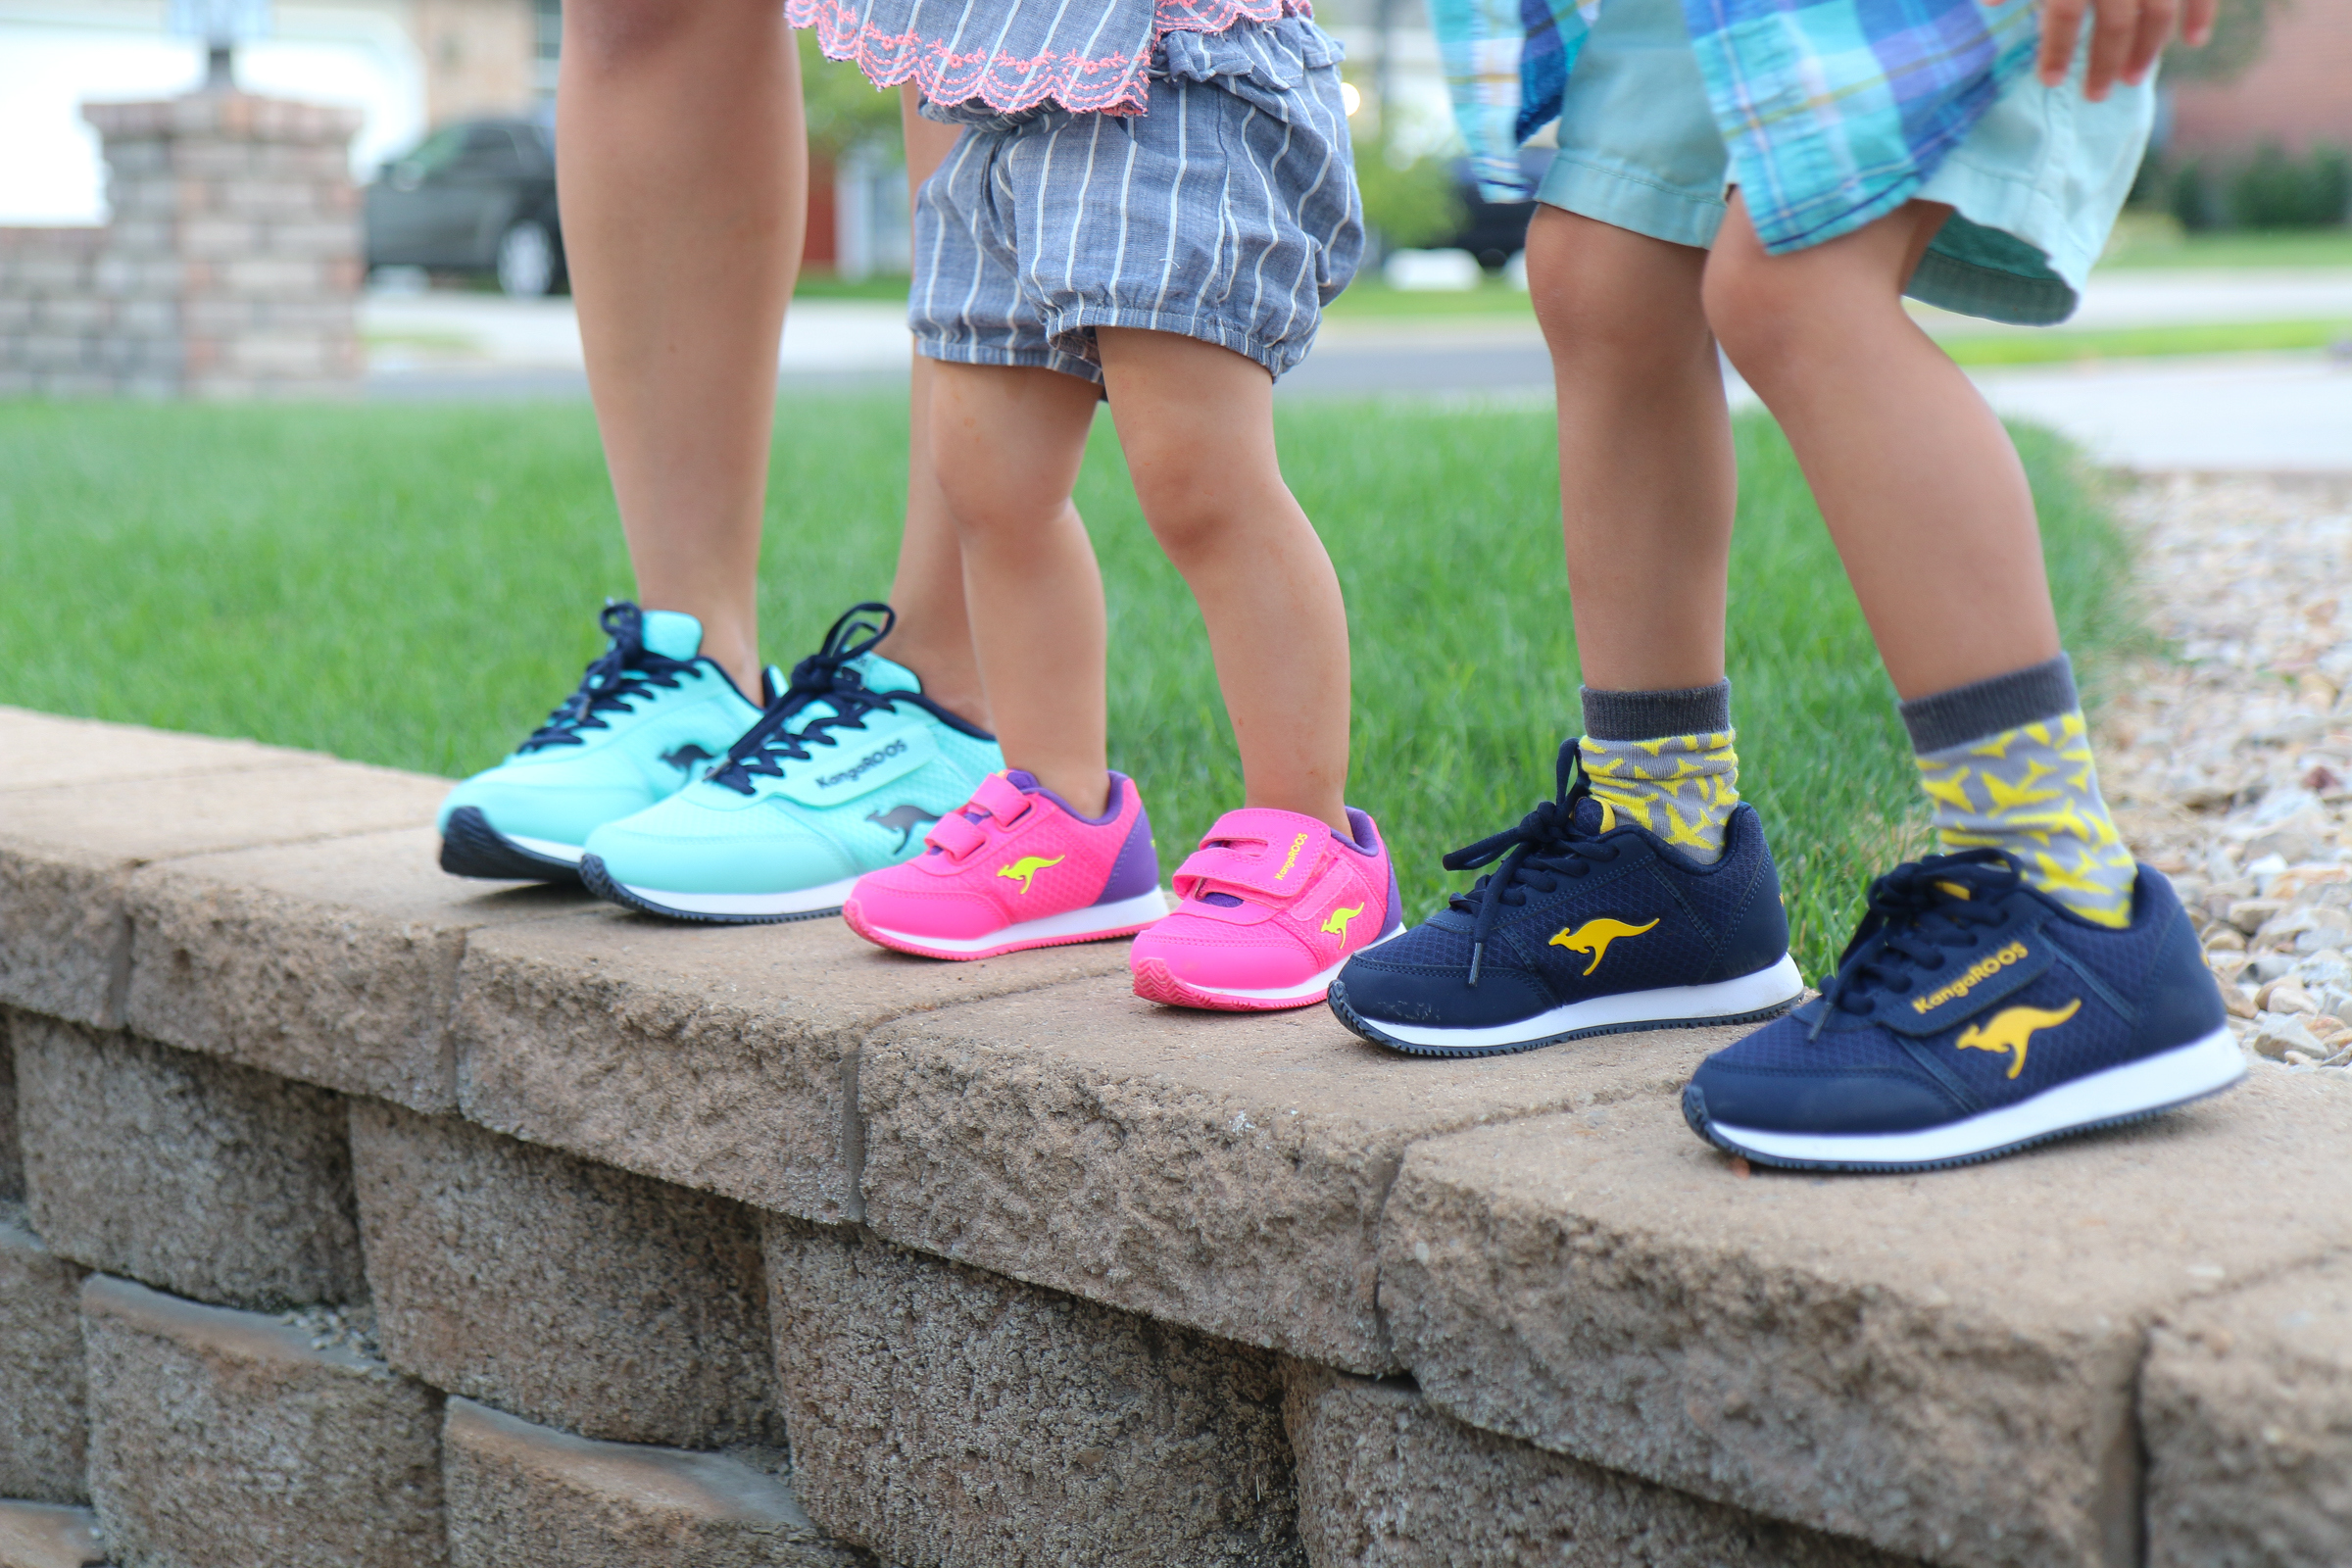 Family wearing Payless Shoes